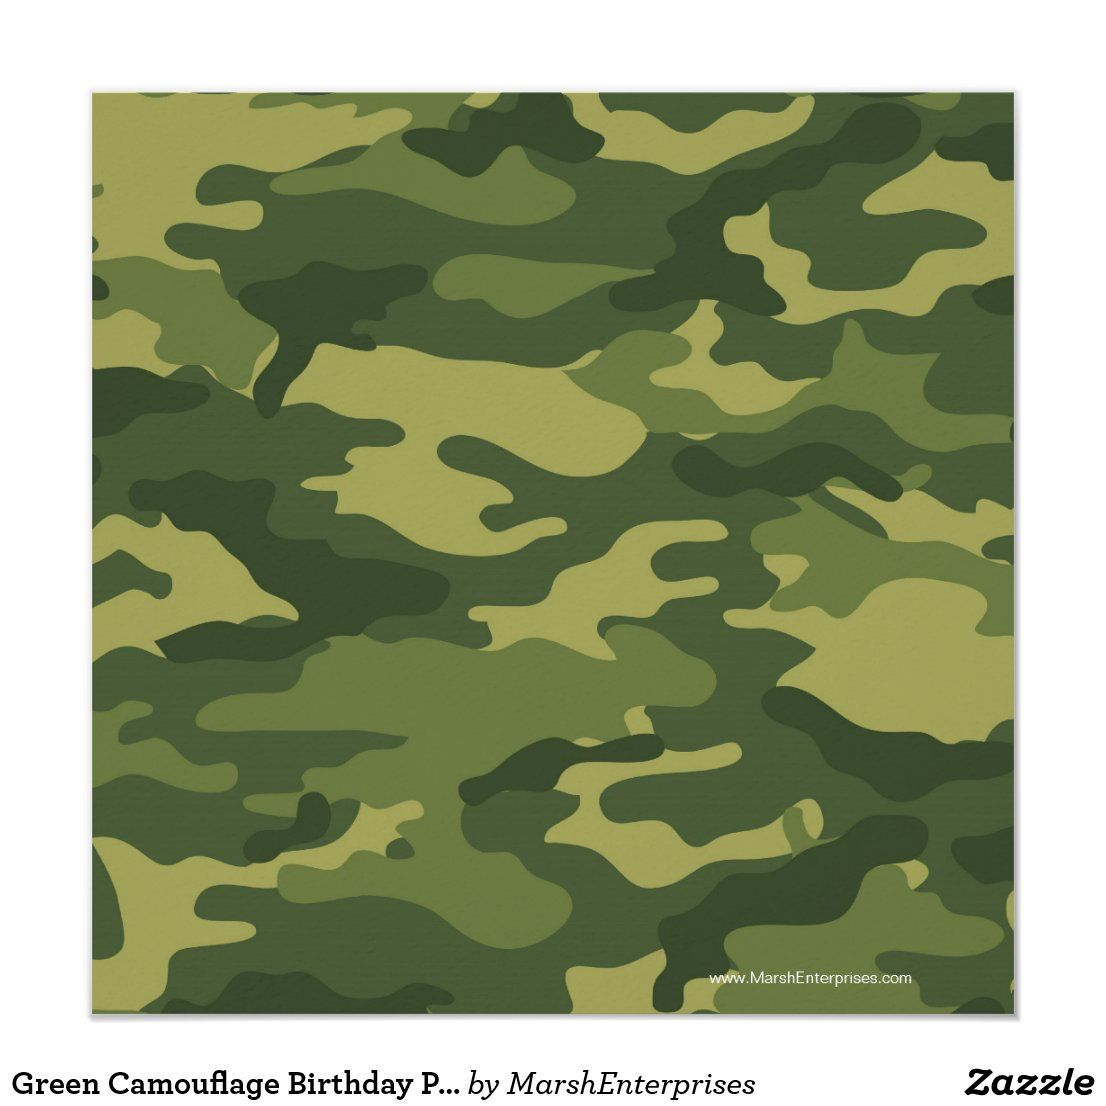 Green Camouflage Birthday Party Invitation Zazzle Com In 2021 Camo Wallpaper Camouflage Wallpaper Army Wallpaper